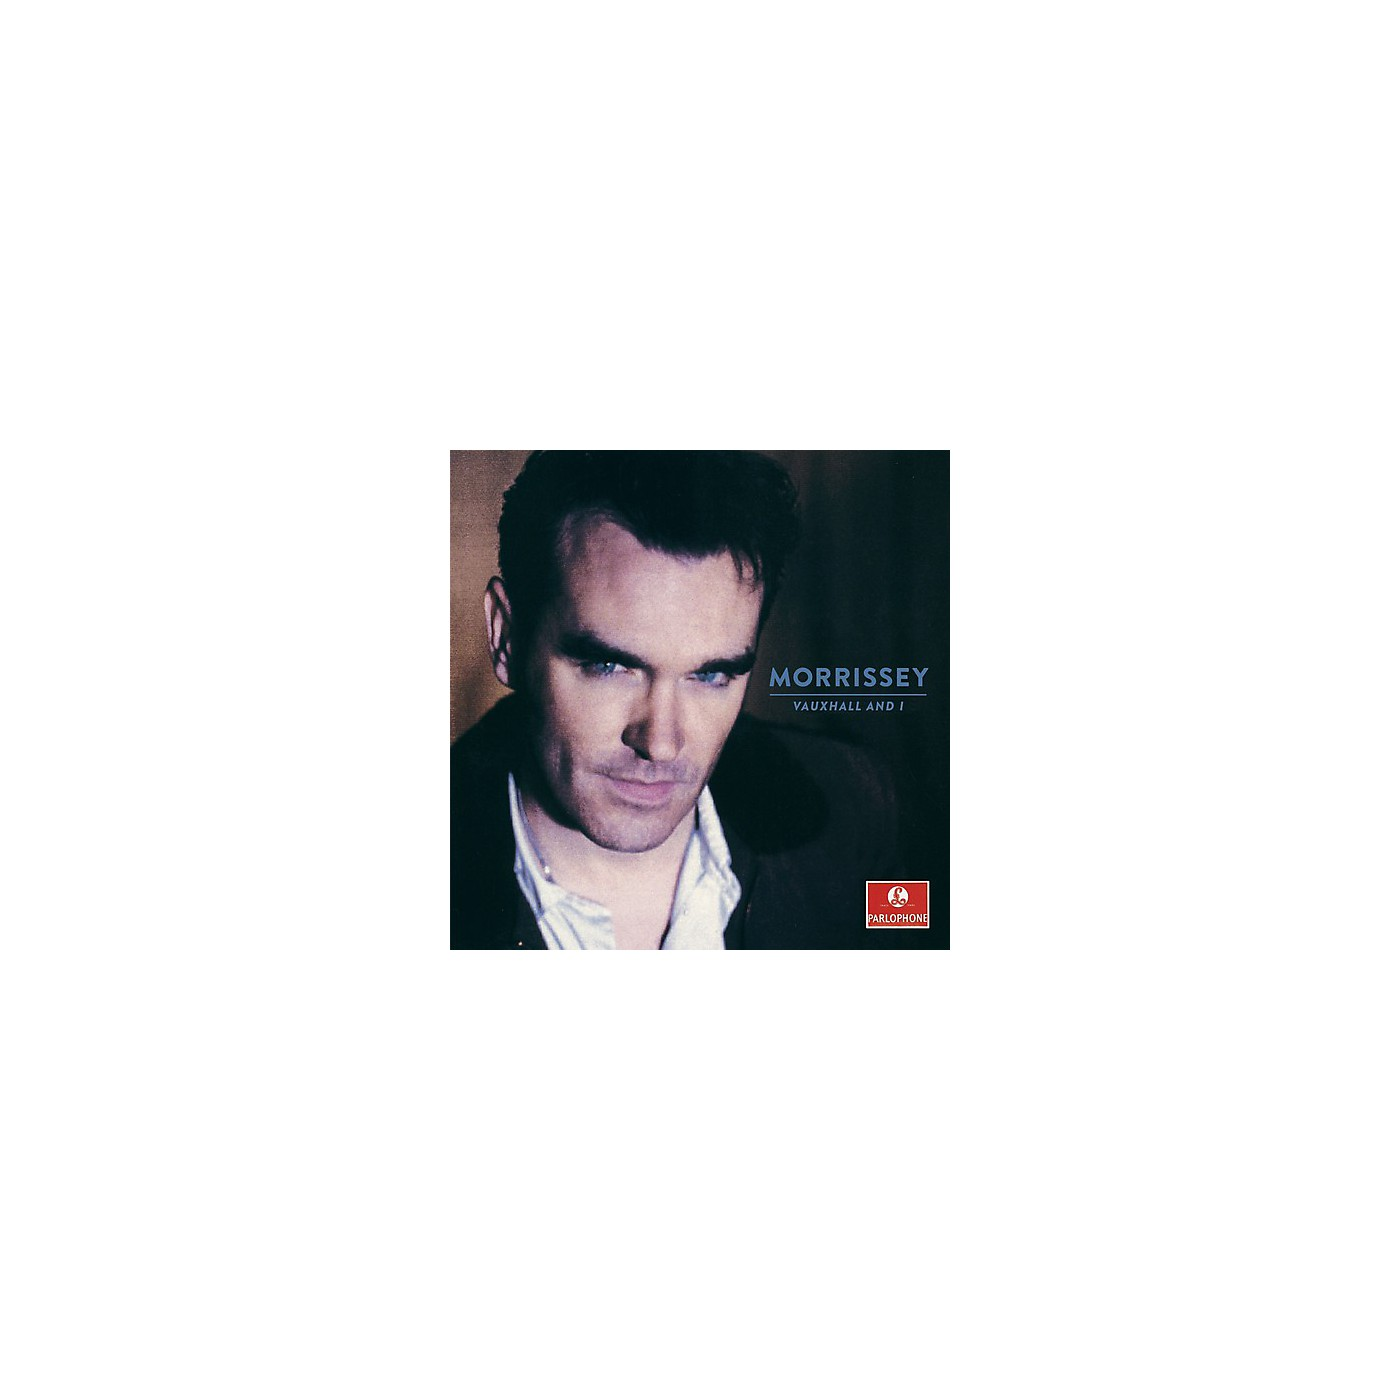 Alliance Morrissey - Vauxhall & I (20th Anniversary Definitive Remastered) thumbnail